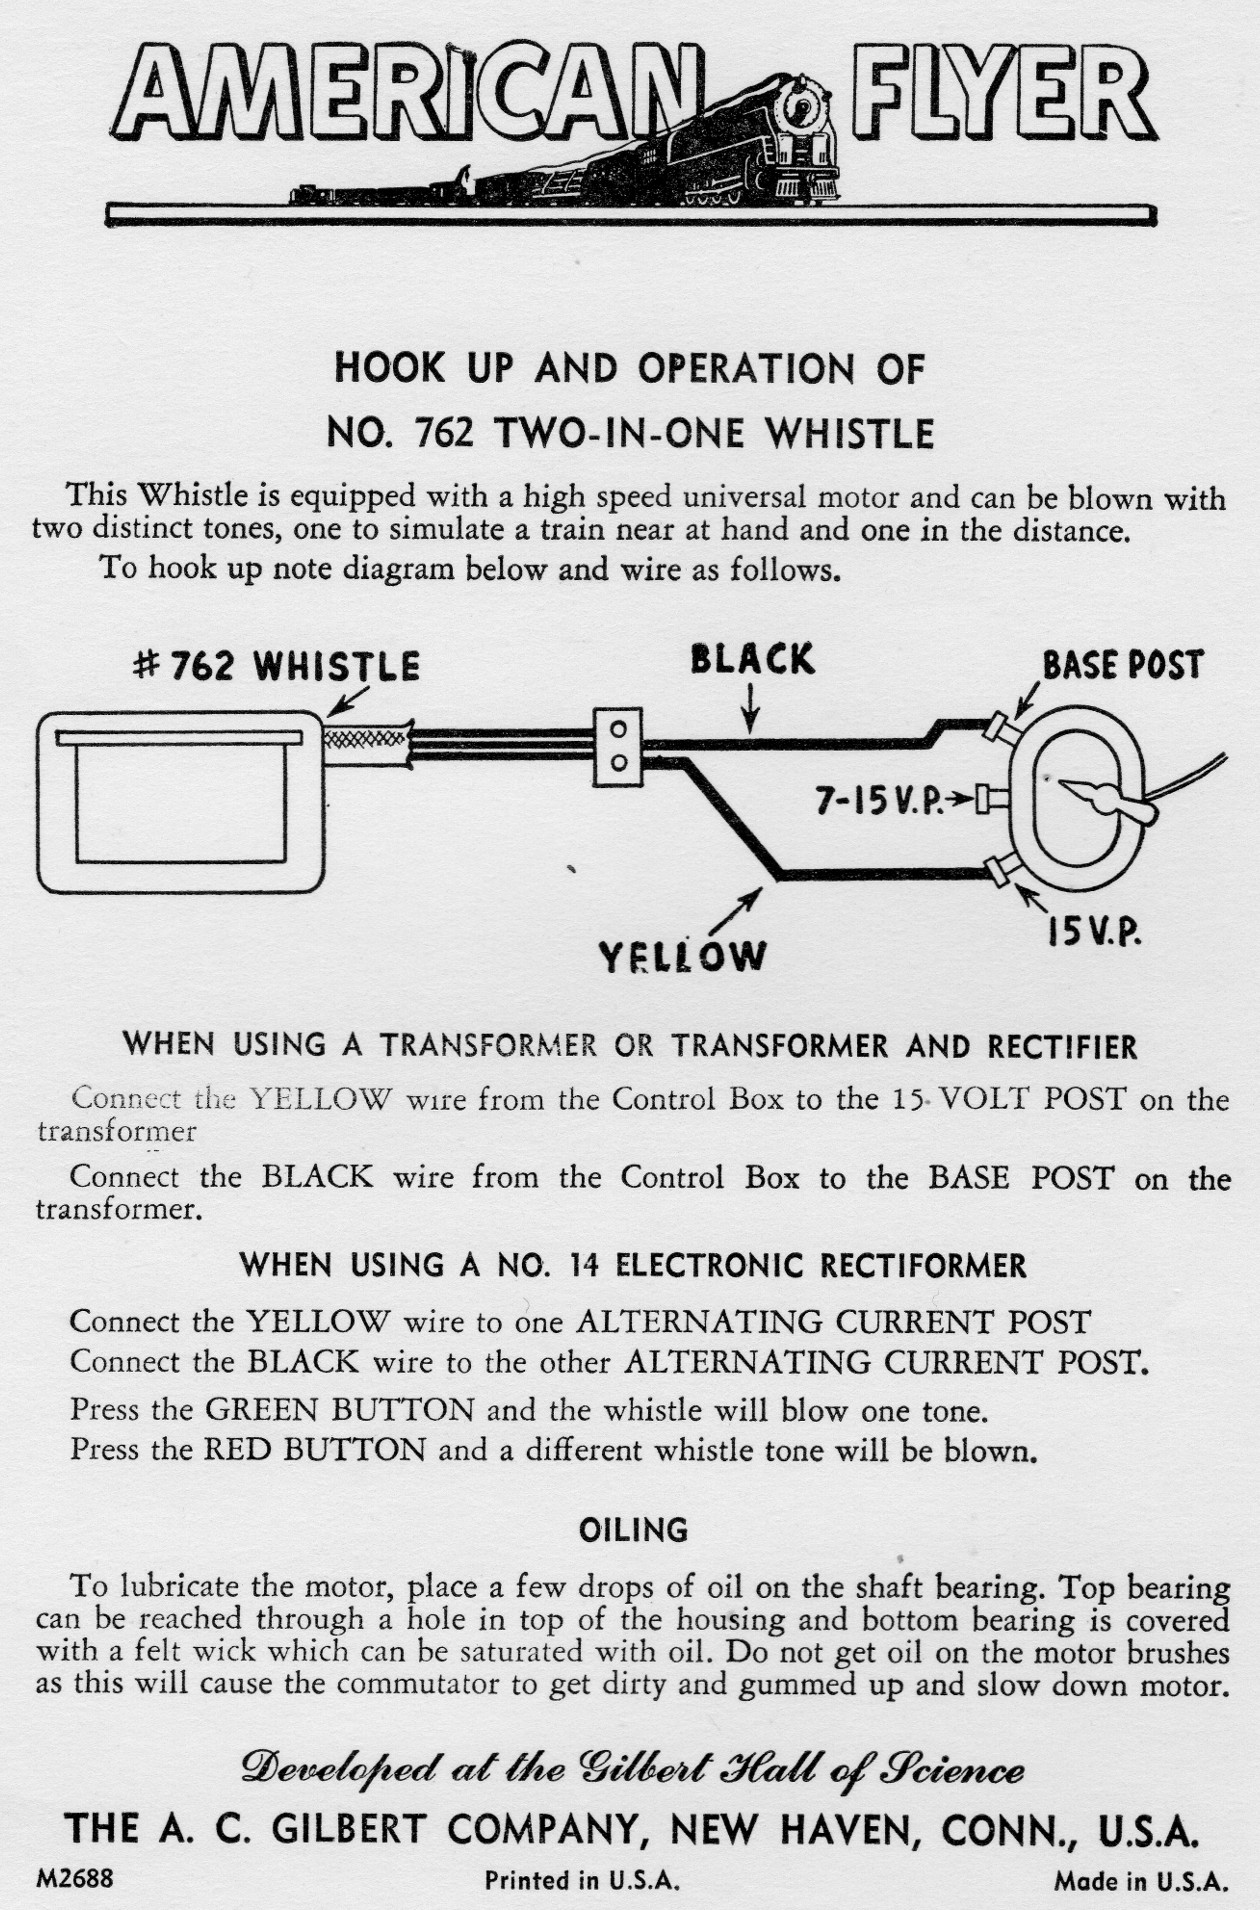 hight resolution of  wiring instructions hook up and operation of no 762 two in one whistle